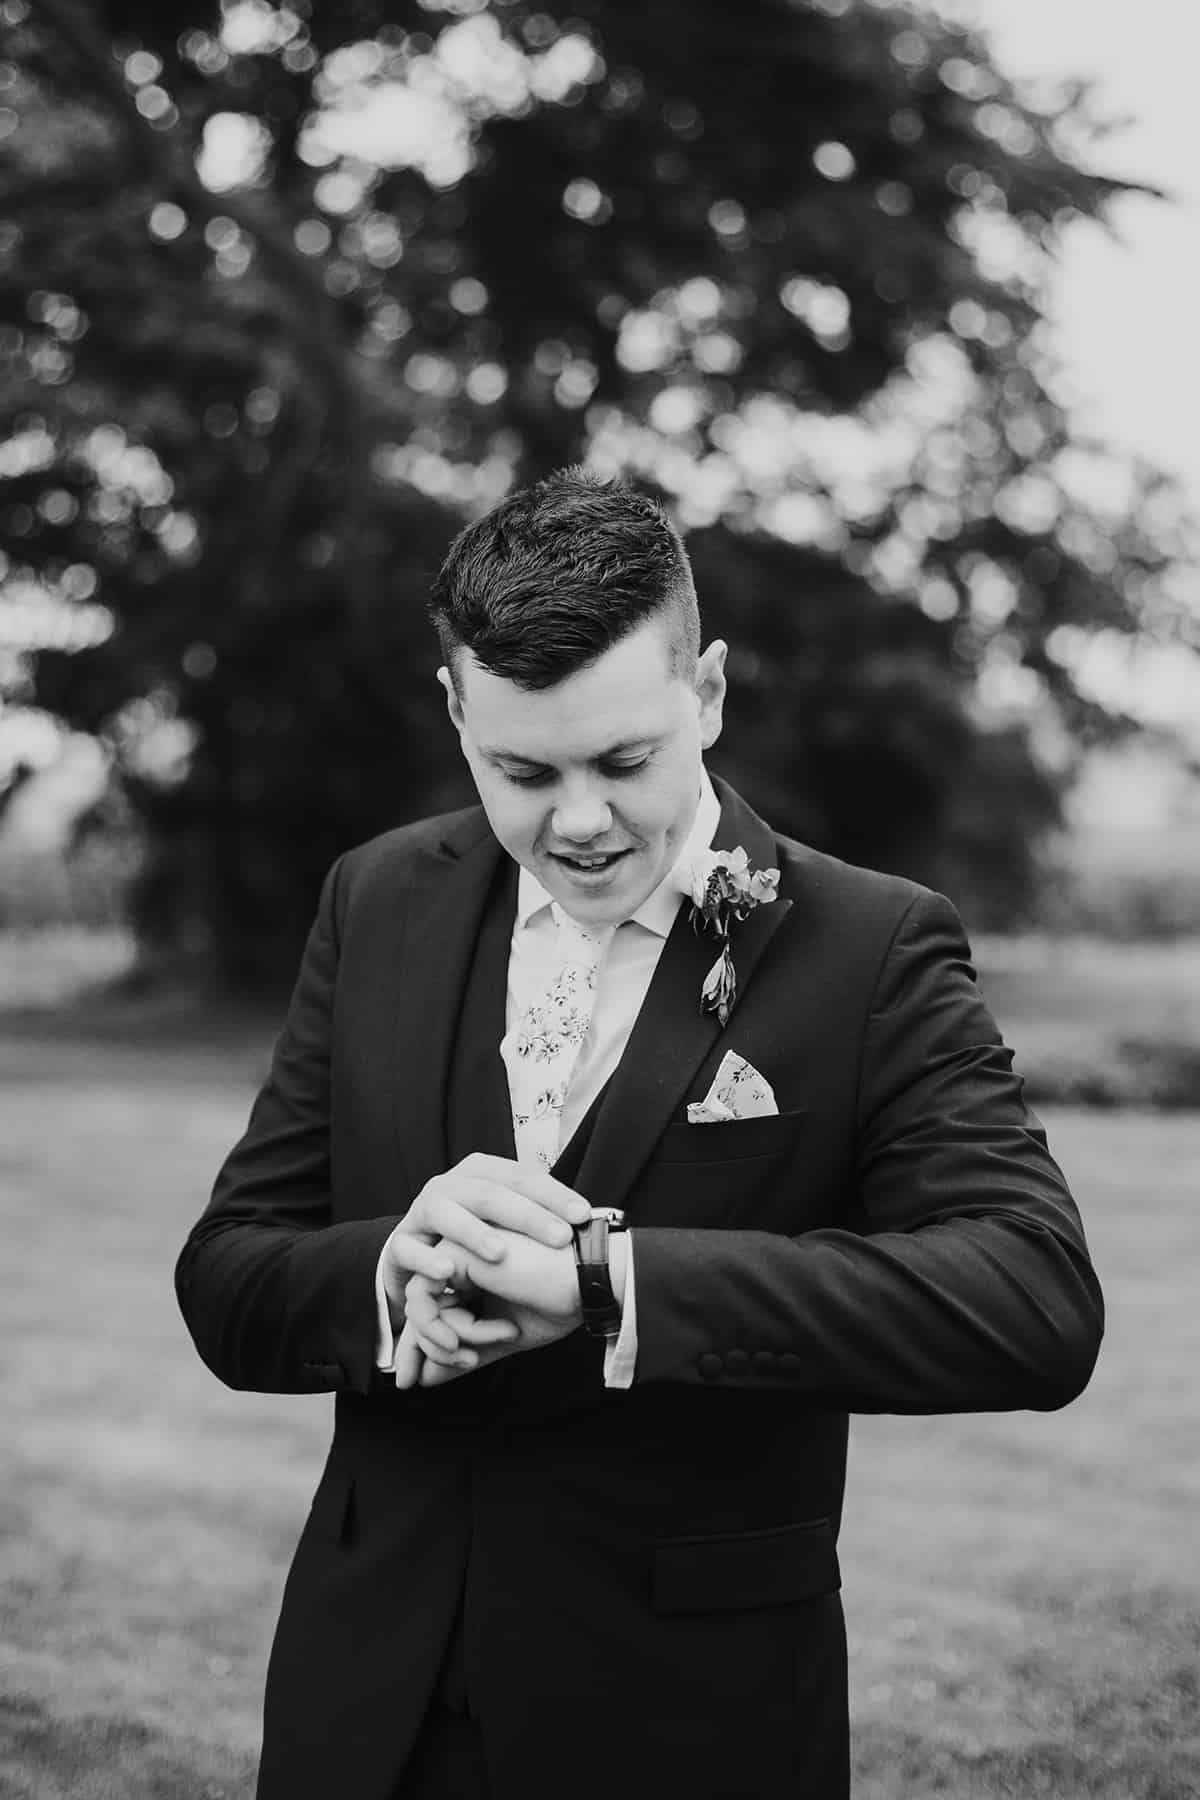 groom at Glewstone court country house wedding photograph